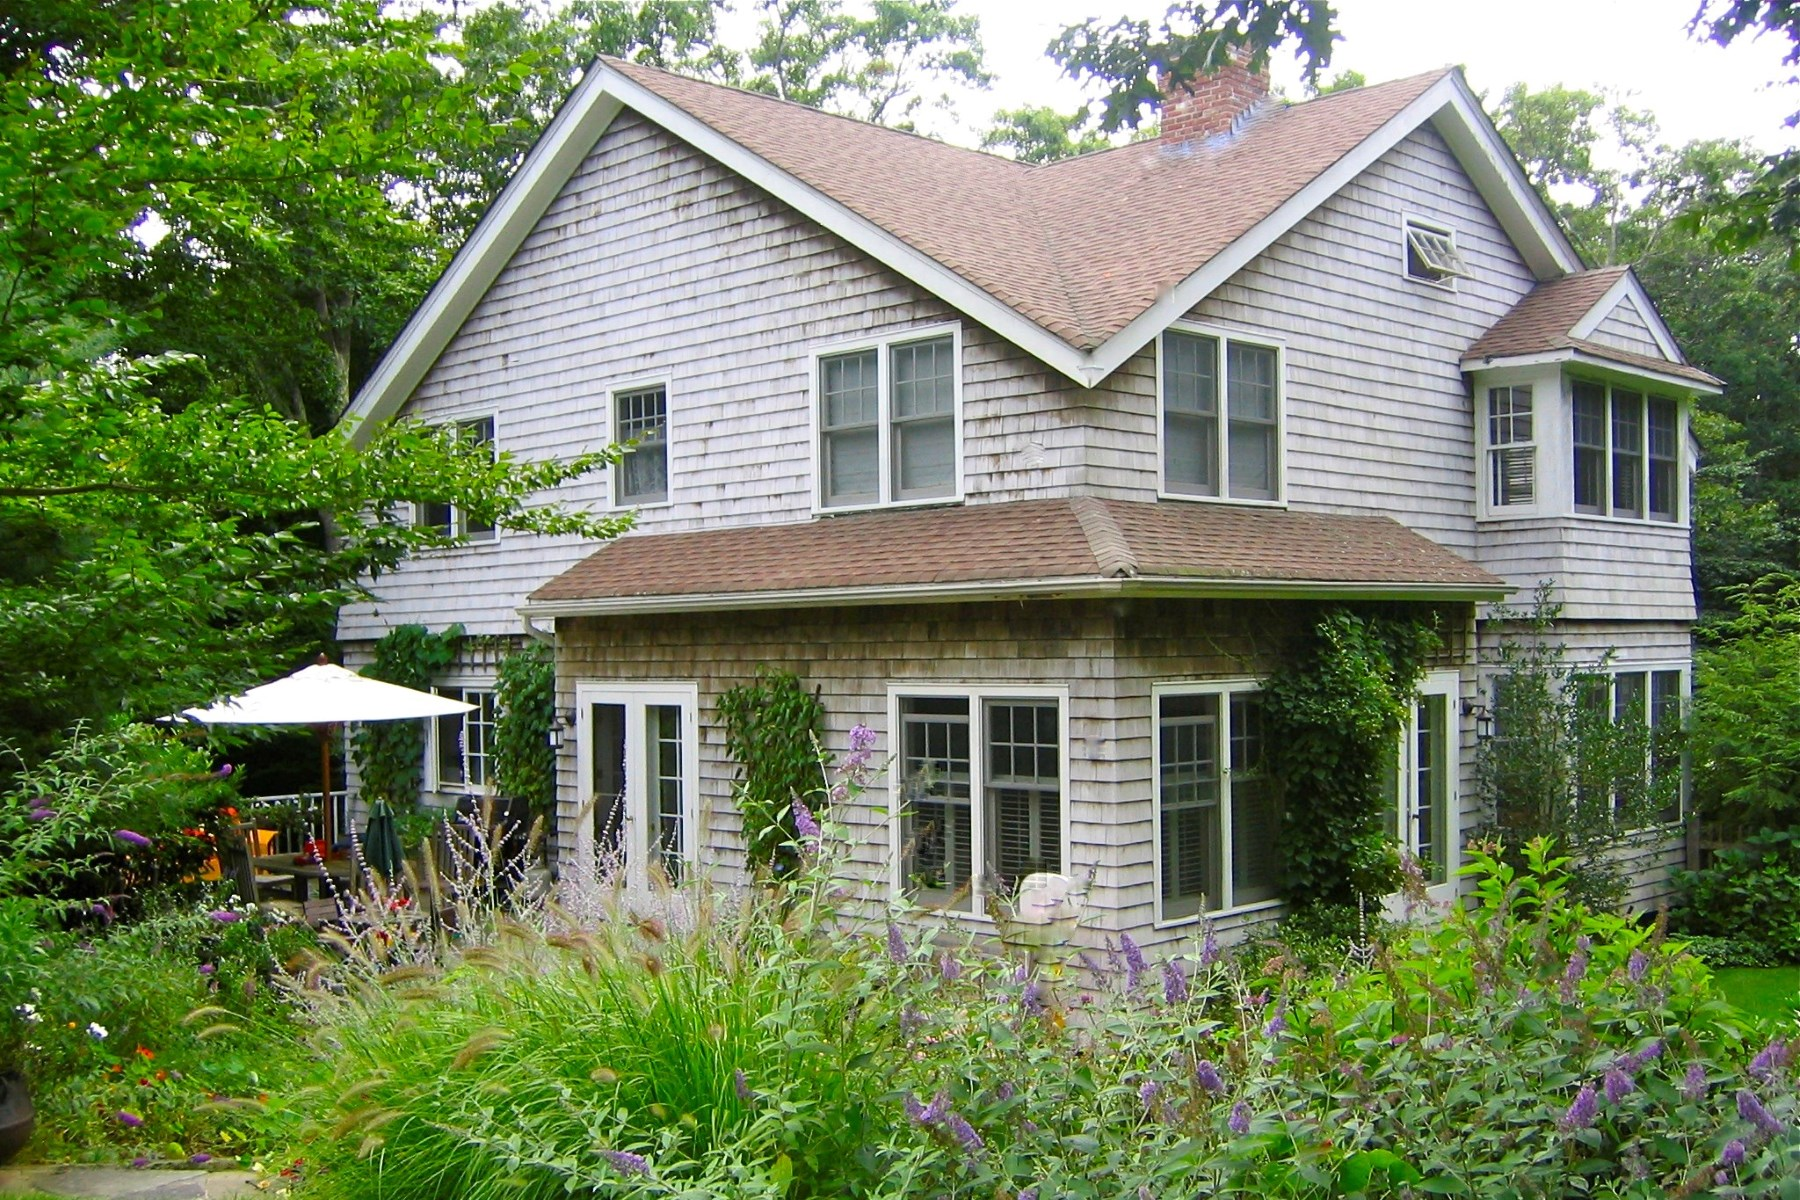 Single Family Home for Rent at PEACEFUL AMAGANSETT TRADITIONAL Amagansett, New York 11930 United States